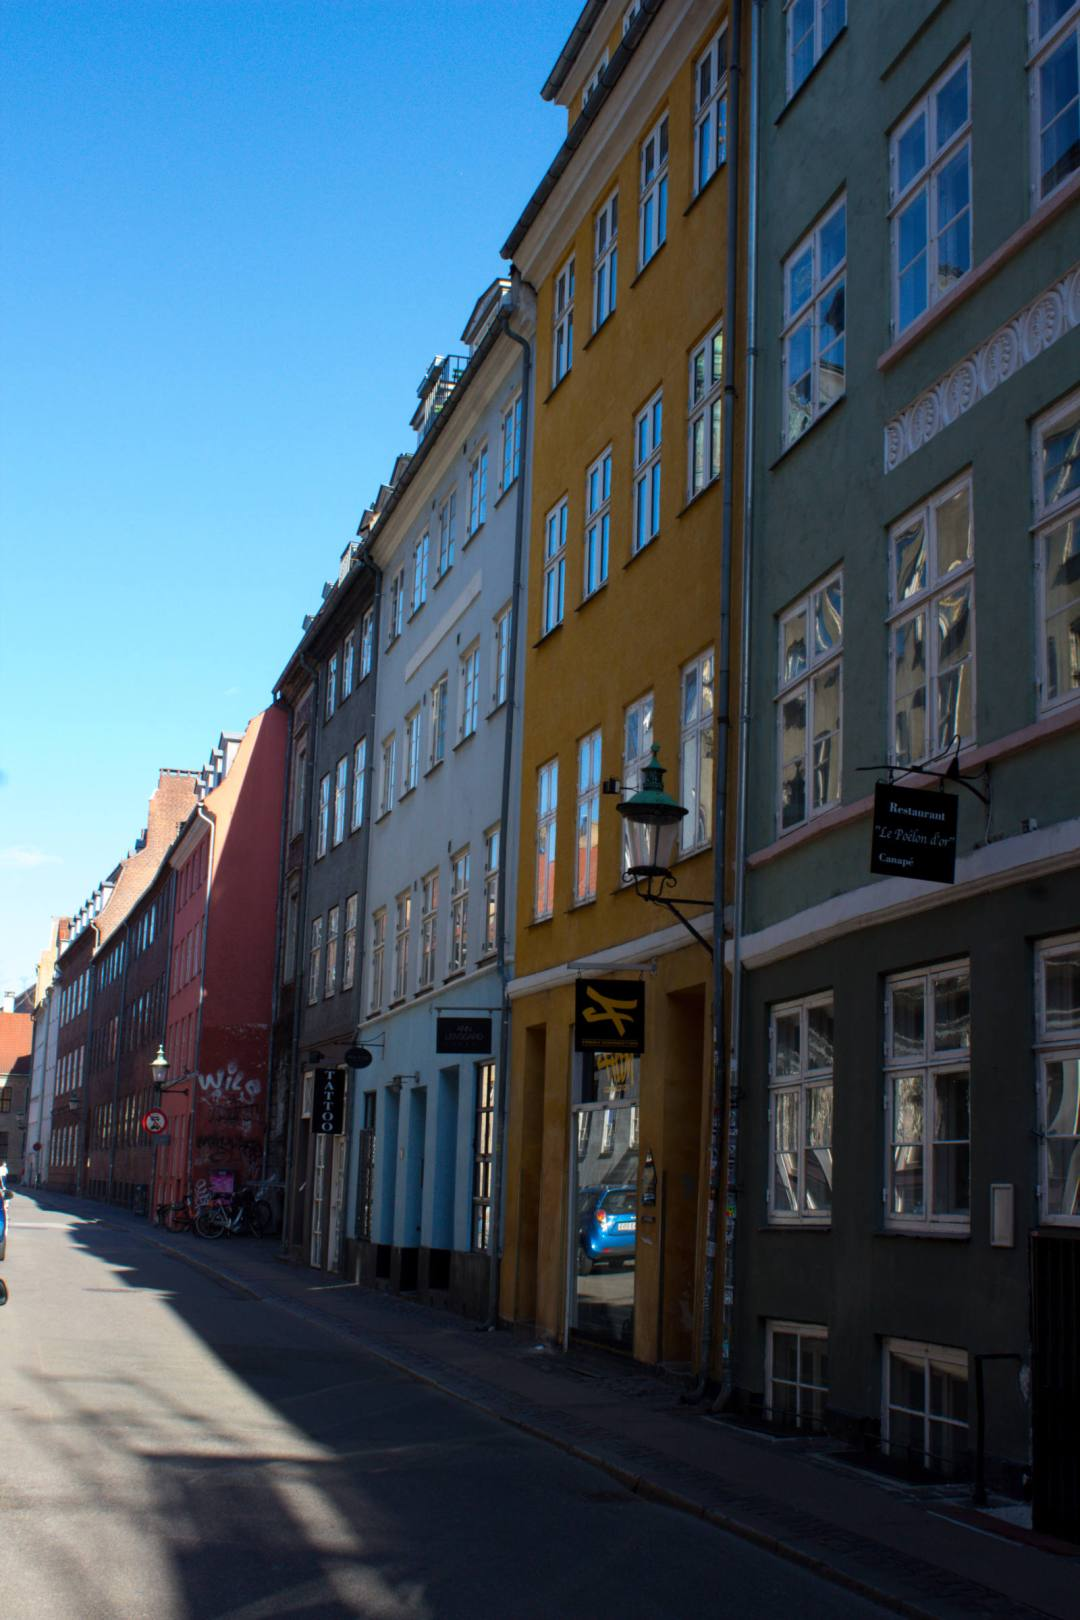 Colourful terraced buildings in Copenhagen